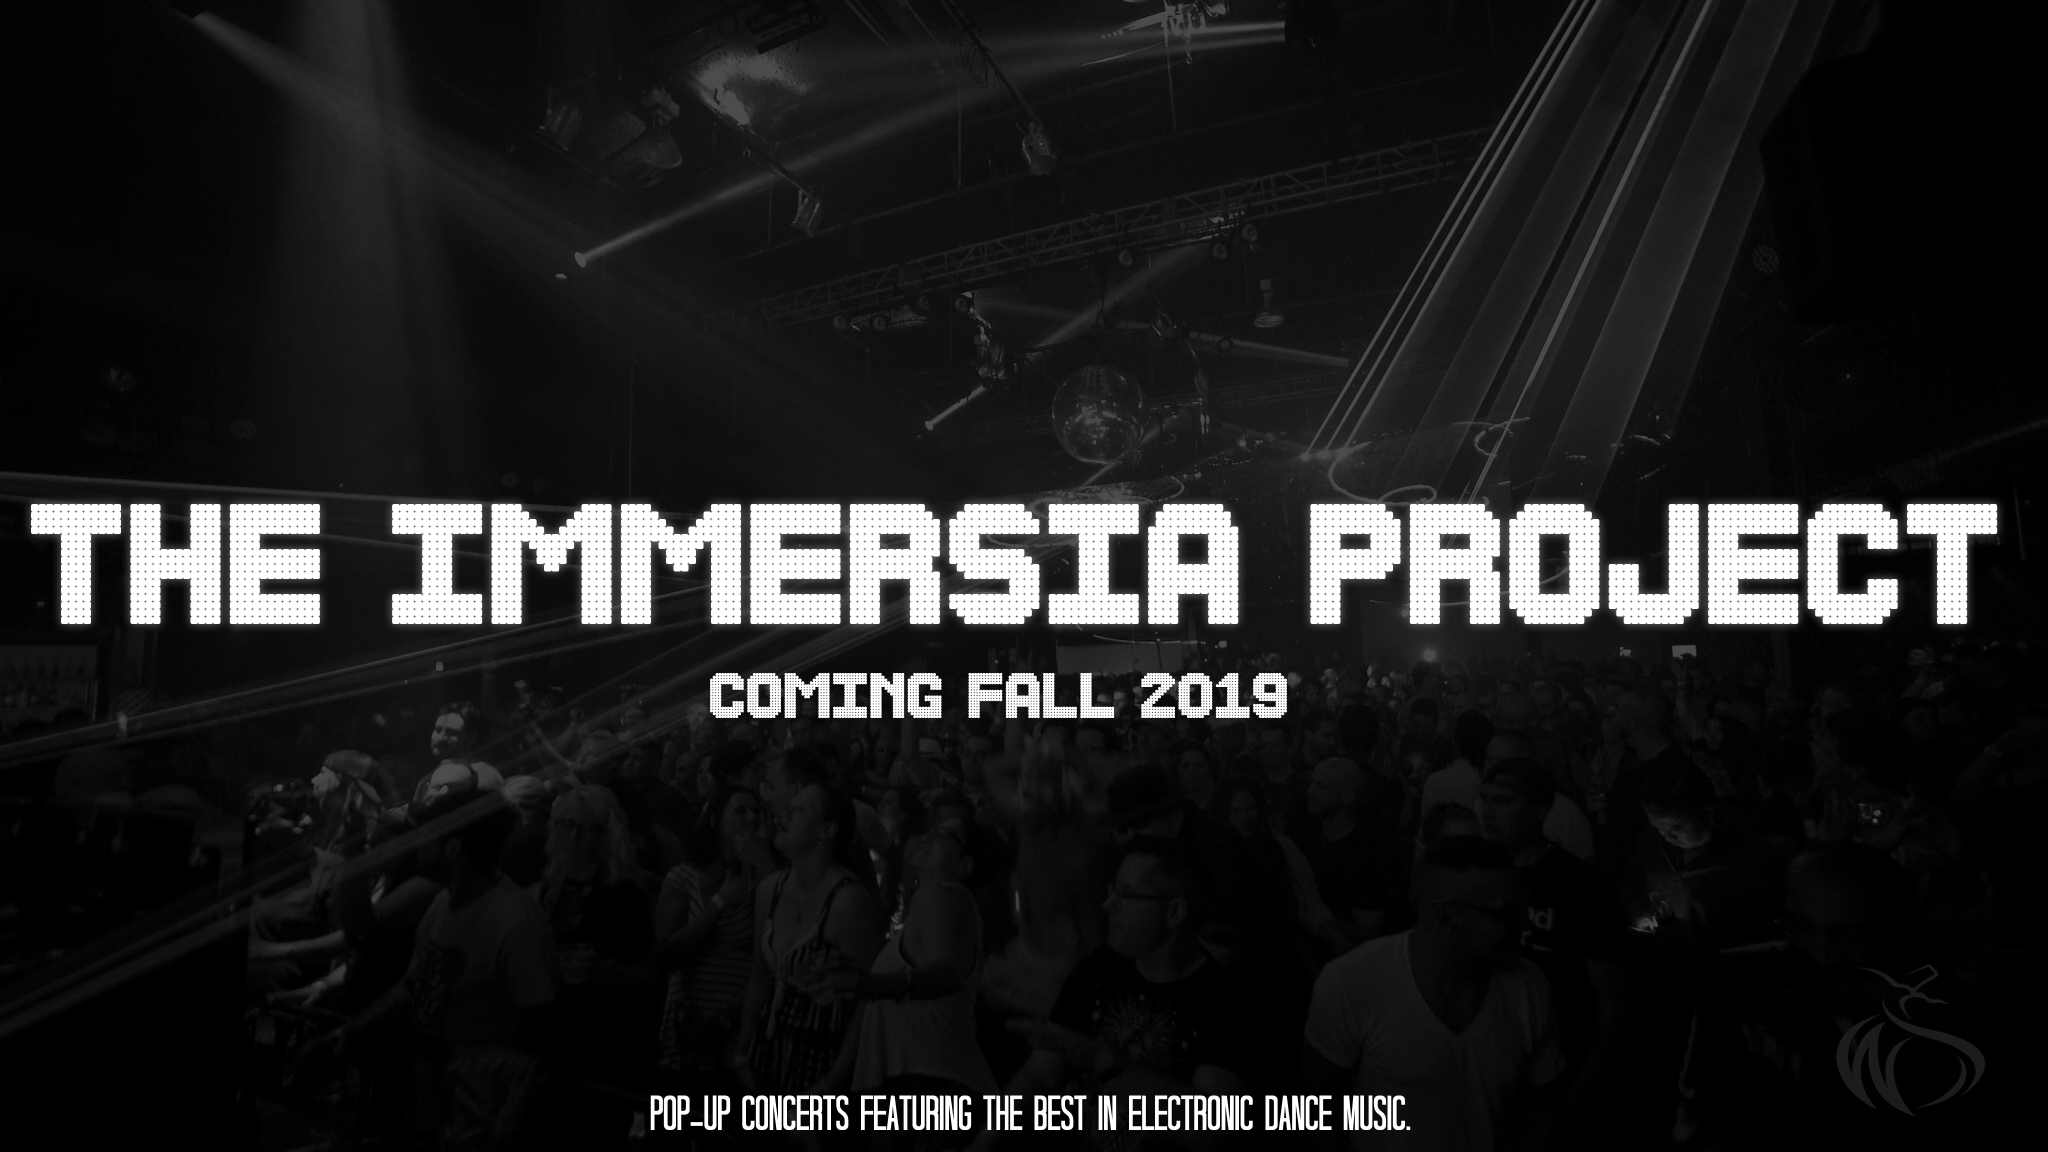 The Immersia Project  is the brainchild of  John Crenshaw  that brings the budding Electronic Dance Music scene to Central Texas in a way never seen before. Instead of big stadiums and daylight crowds,  Immersia  is held in an oldschool warehouse-style concert venue enlisting some of the biggest names in the EDM scene. Stay tuned for more!